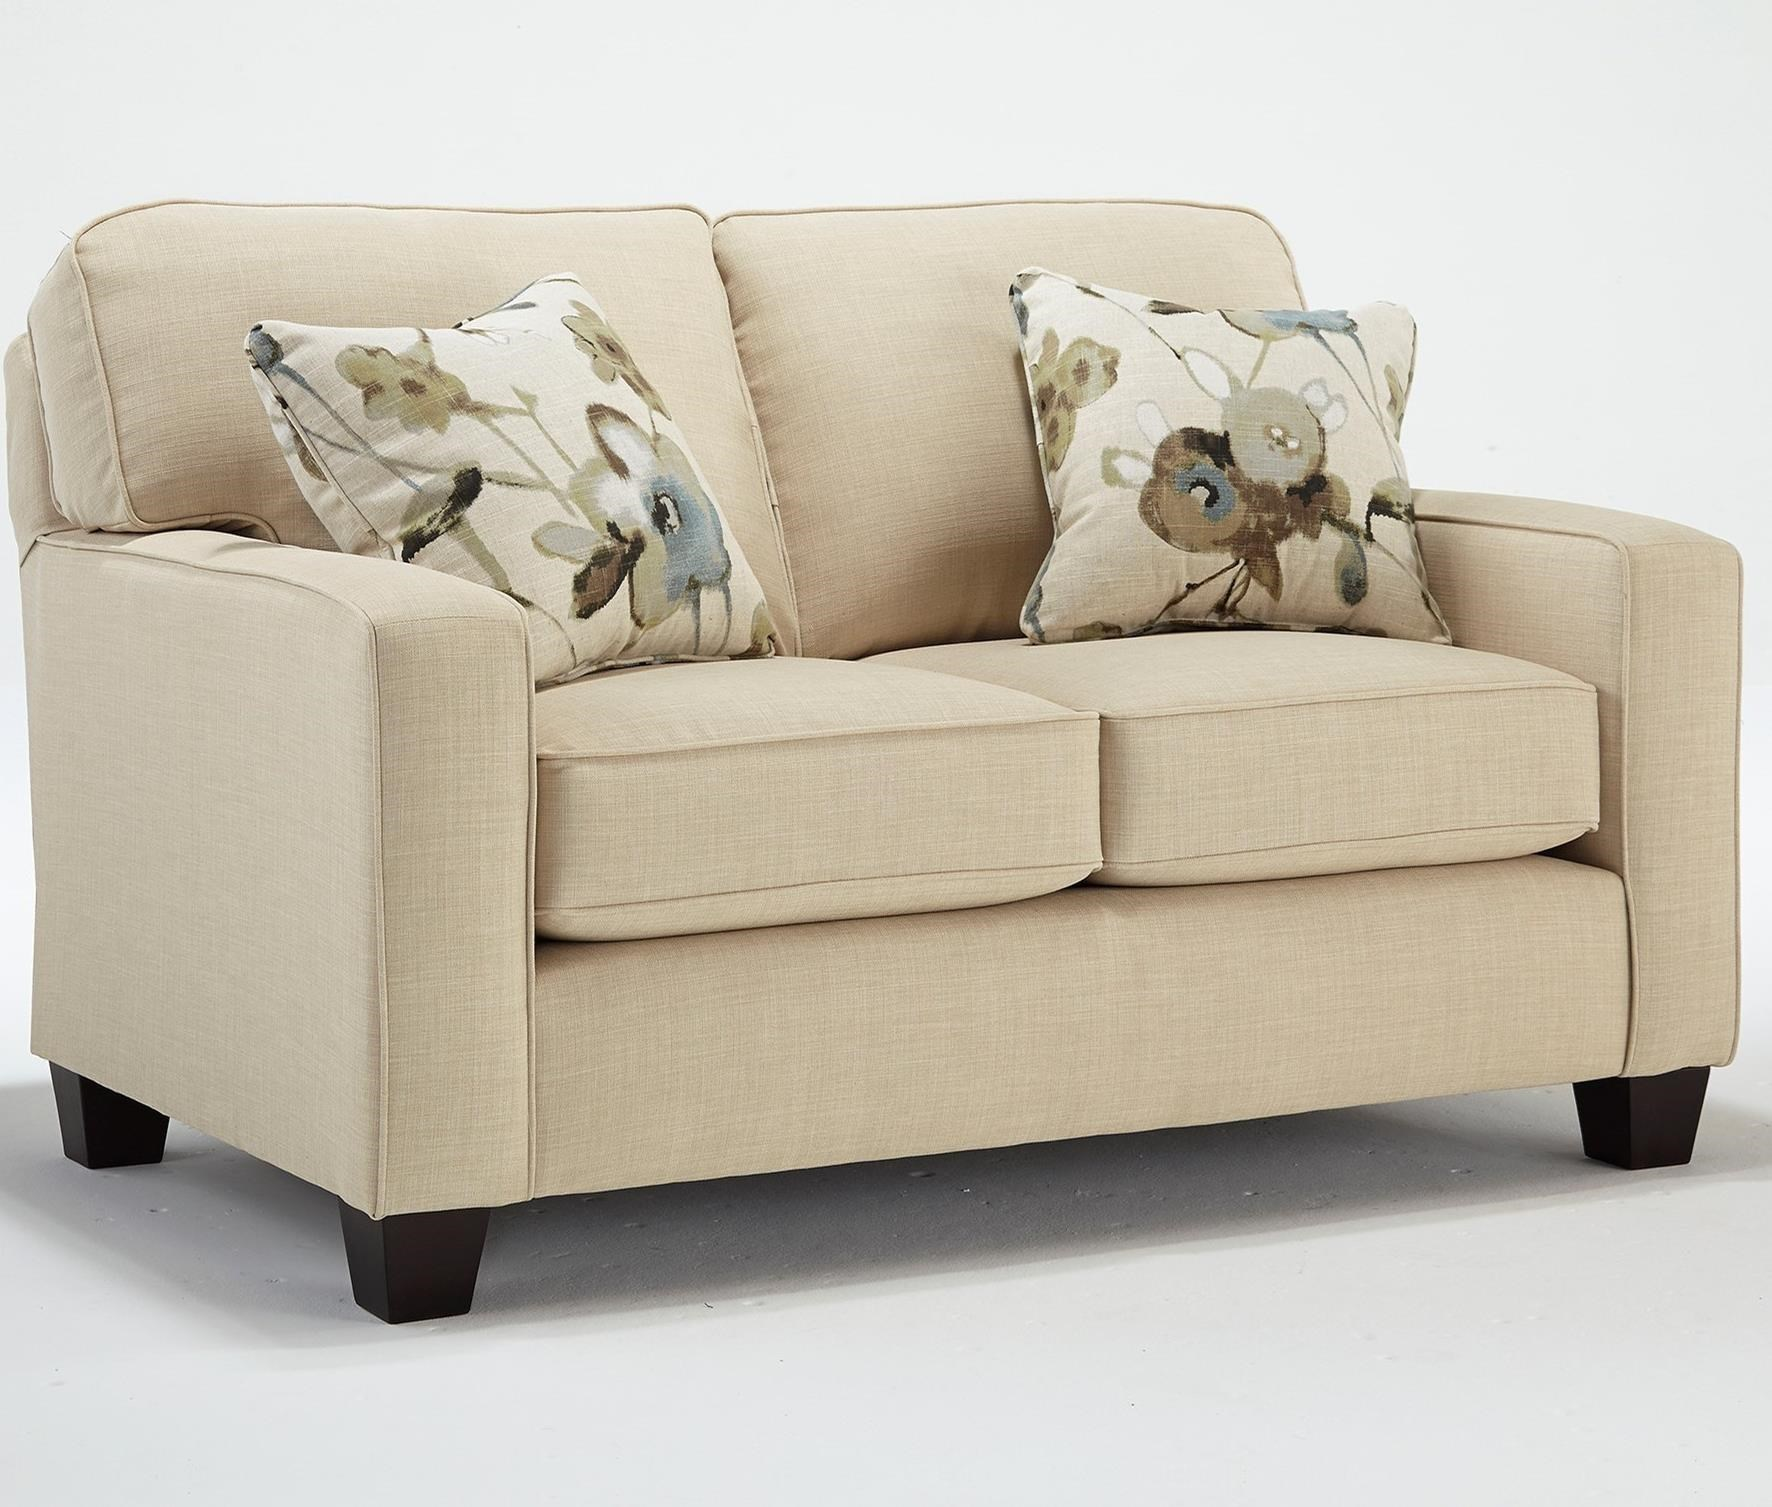 Customizable Loveseat with Track Arms